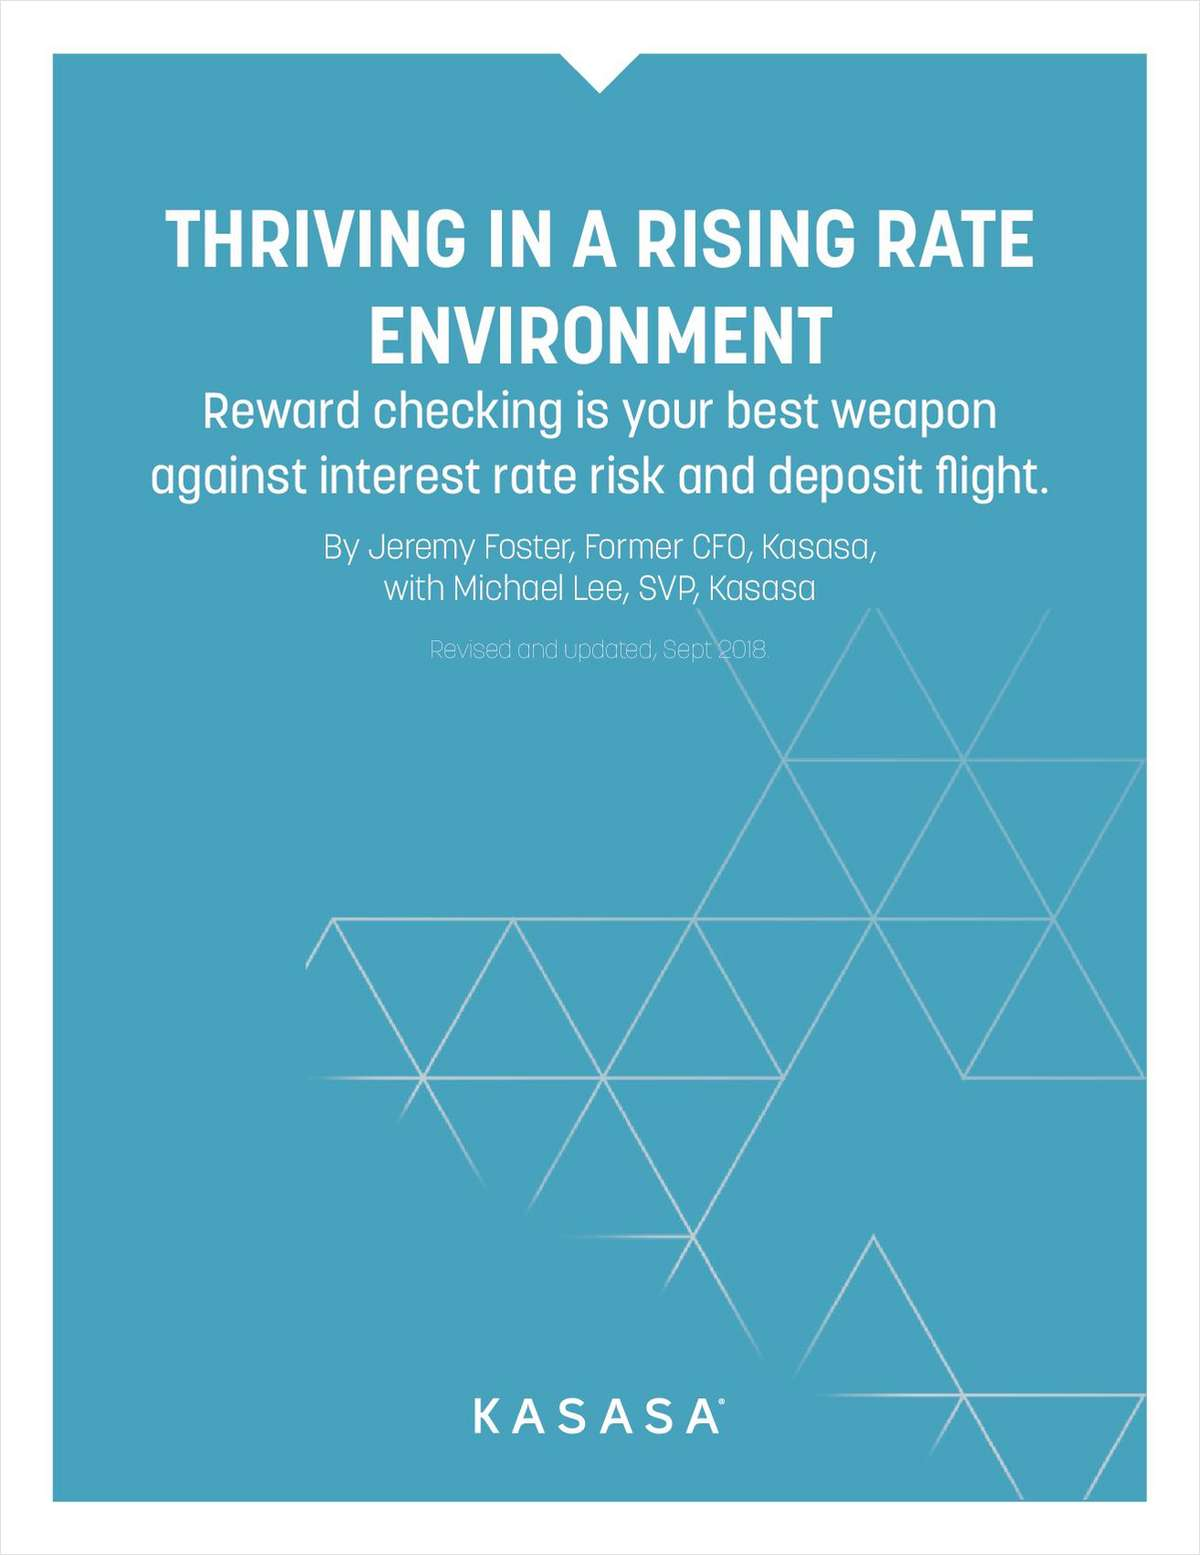 Thriving in a Rising Rate Environment